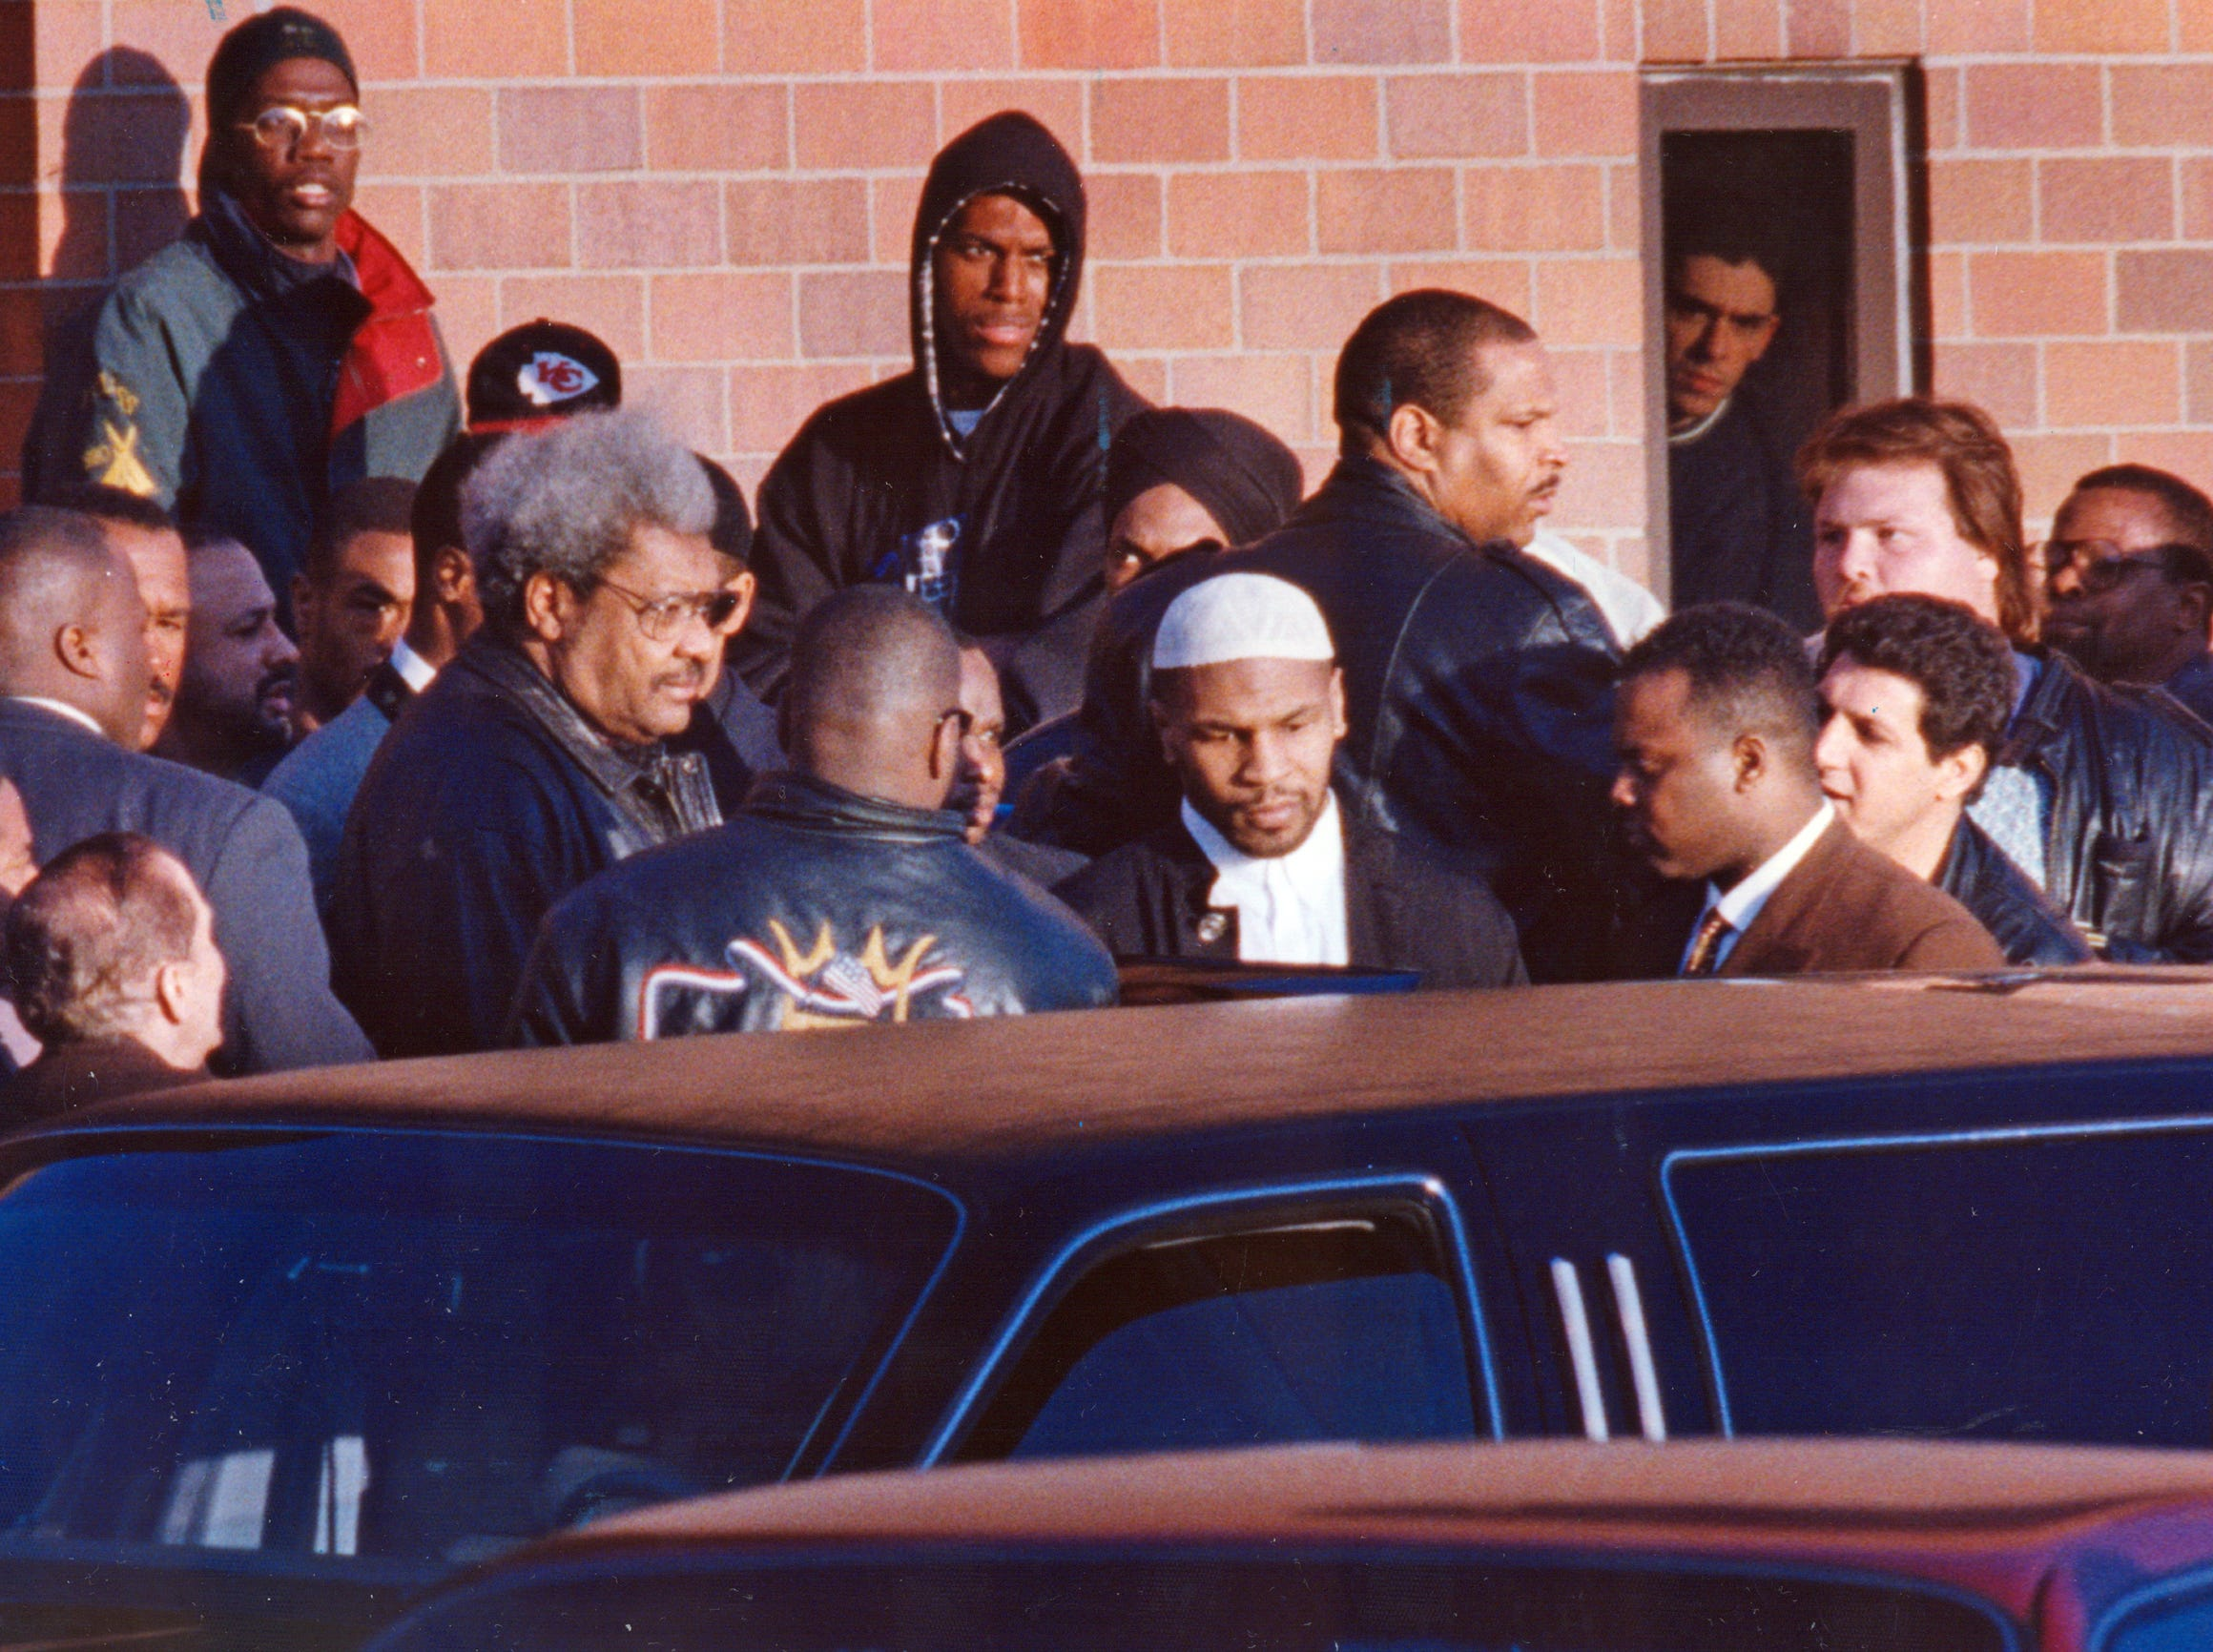 Mike Tyson is released from the Indiana Youth Center near Plainfield, Indiana in March 1995. With him is boxing promoter Don King.